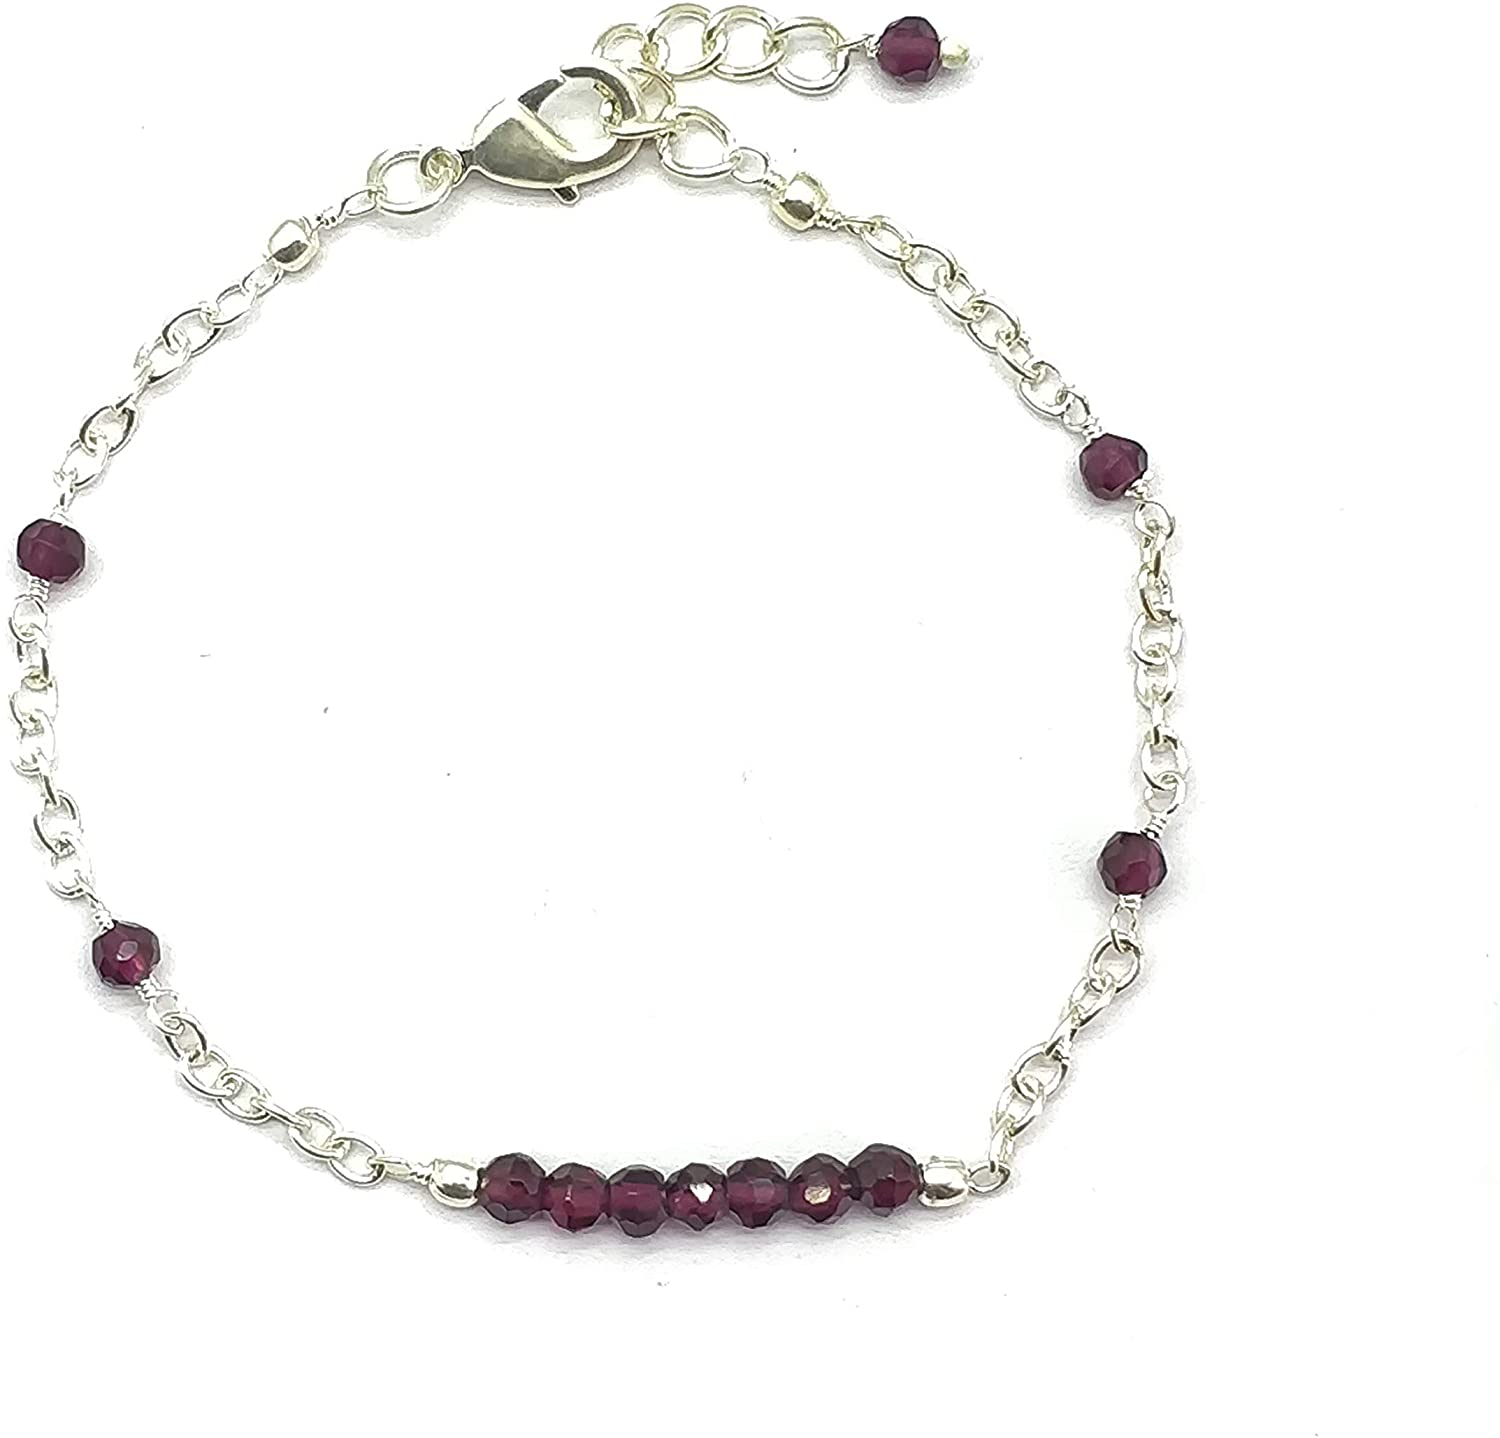 Natural Pink Garnet Silver plated, 4mm Rondelle Faceted 7 inch Adjustable bracelet beaded bar bracelet jewelry for GF & Wife, Mother gift